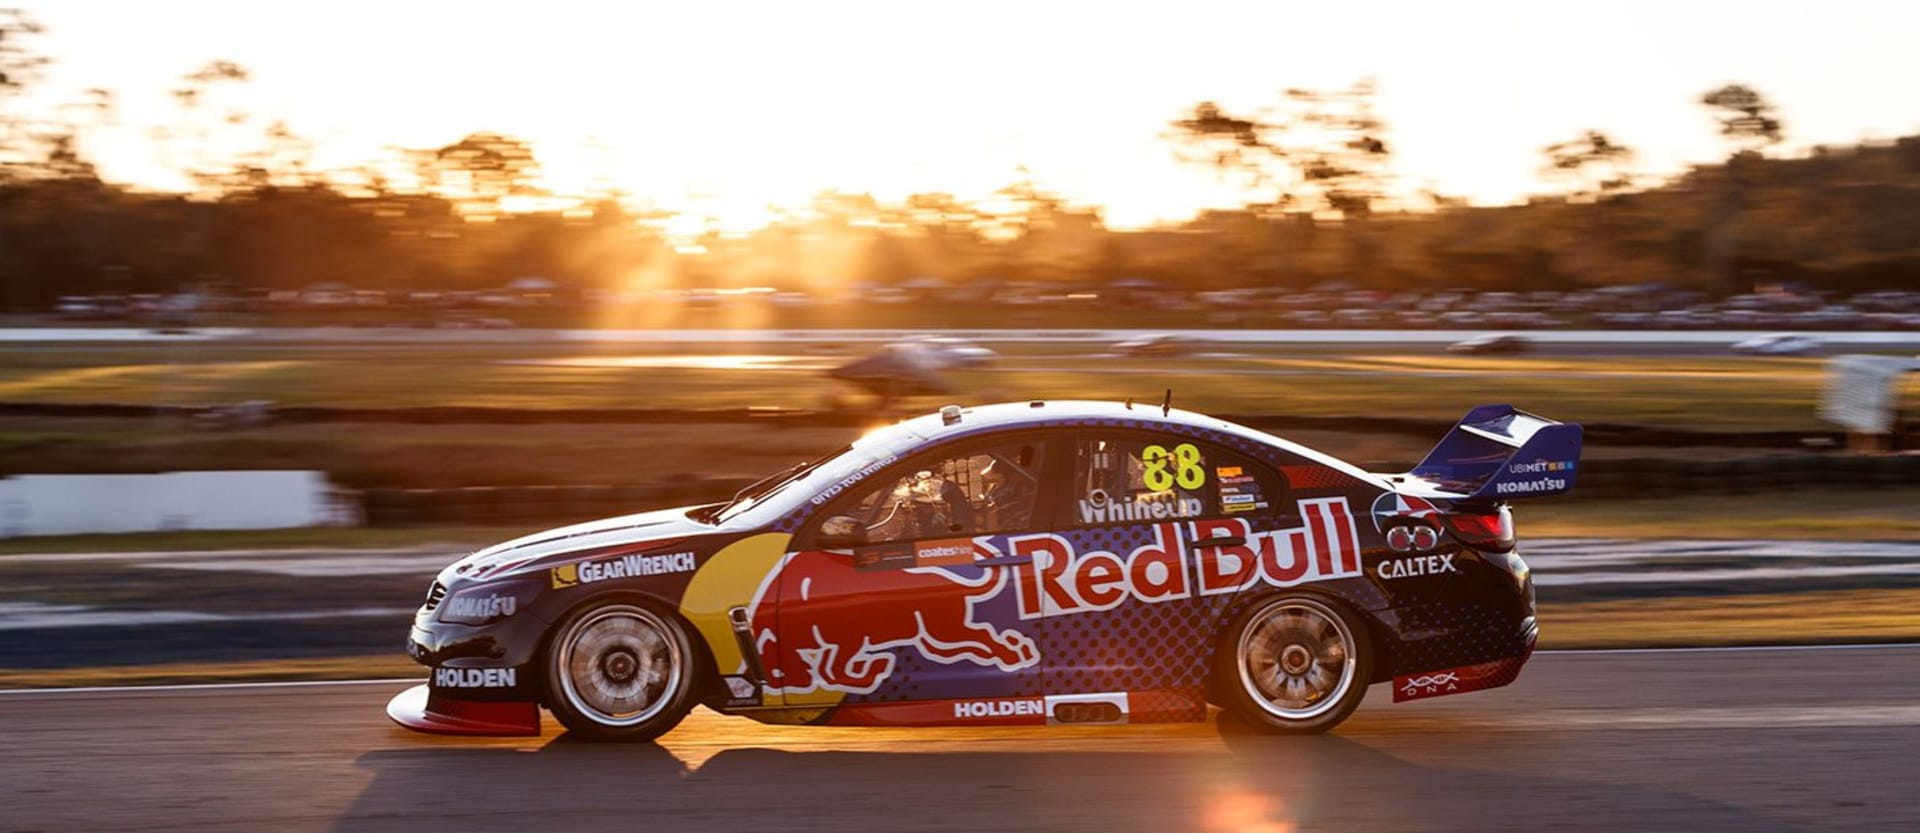 V8 Supercars - Team-mates push championship benchmark Whincup to improve